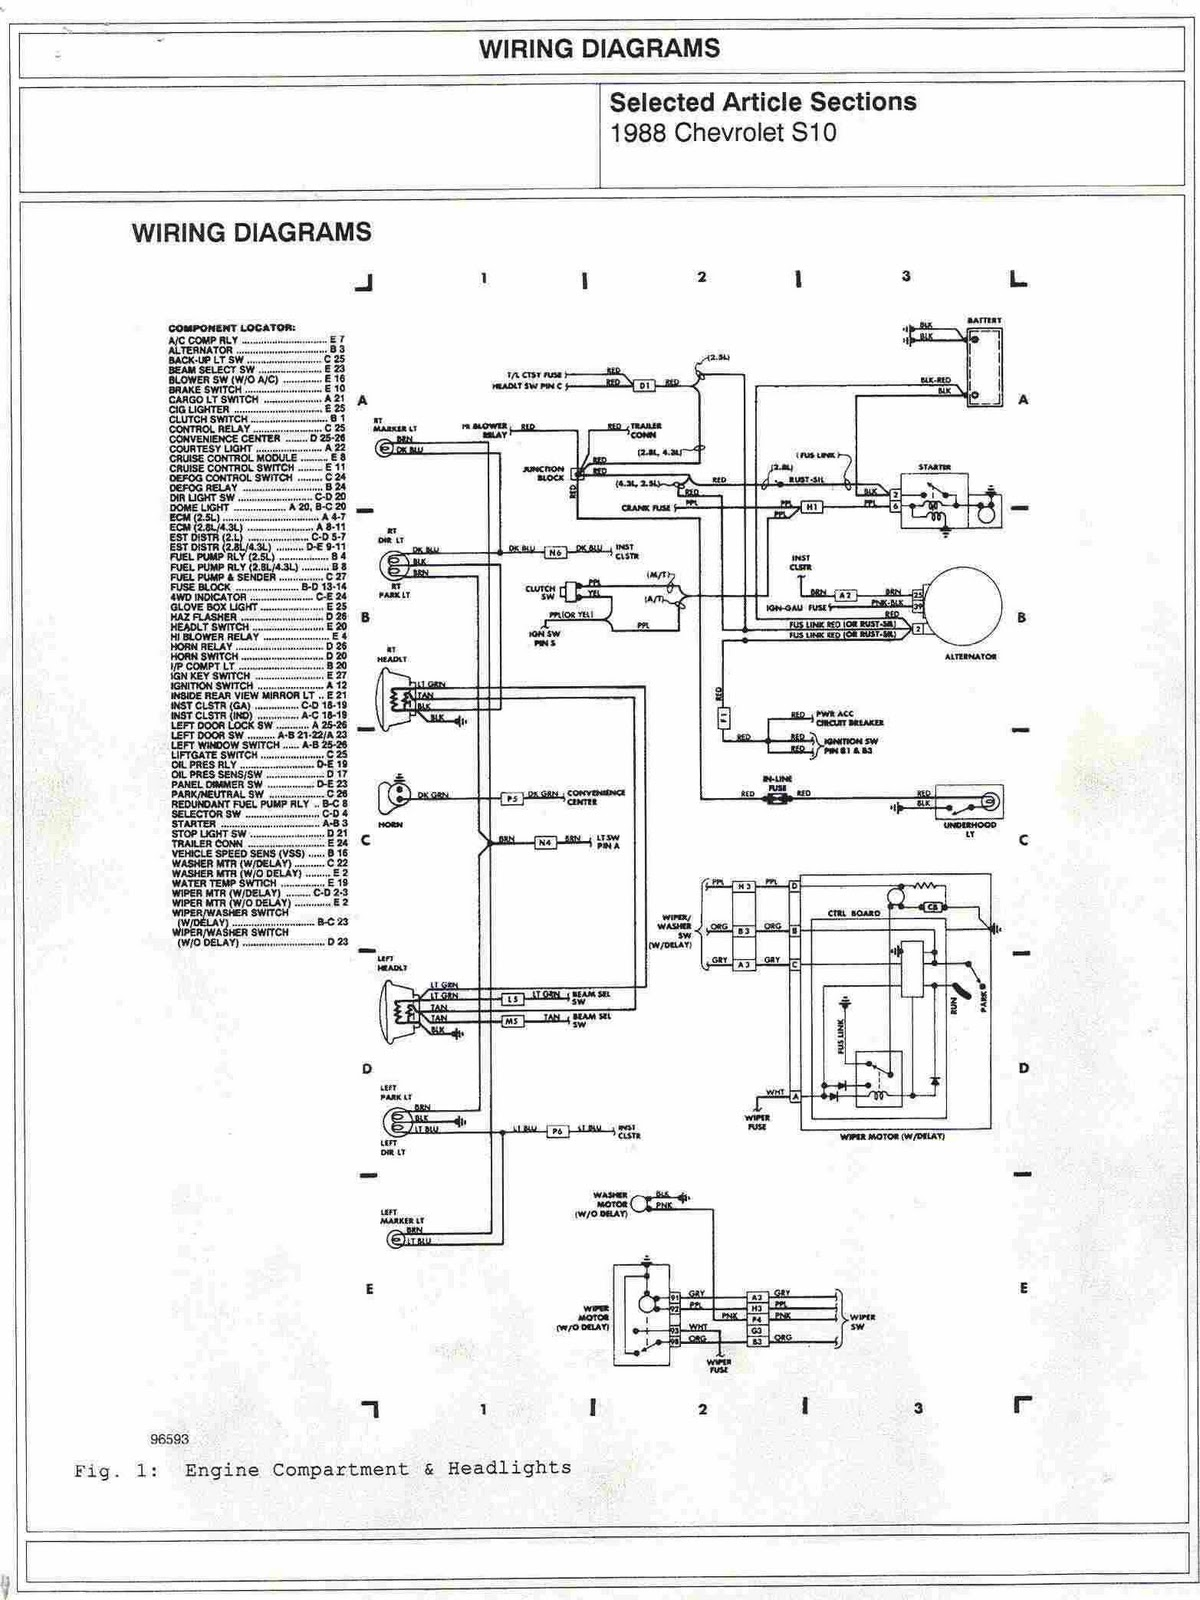 2009 Chevy Express Fuel System Control Module Wiring Schematic 62 1995 Monte Carlo Fuse Box Diagram Schematics U2022 1988 Chevrolet S10 Engine Compartment And Headlights